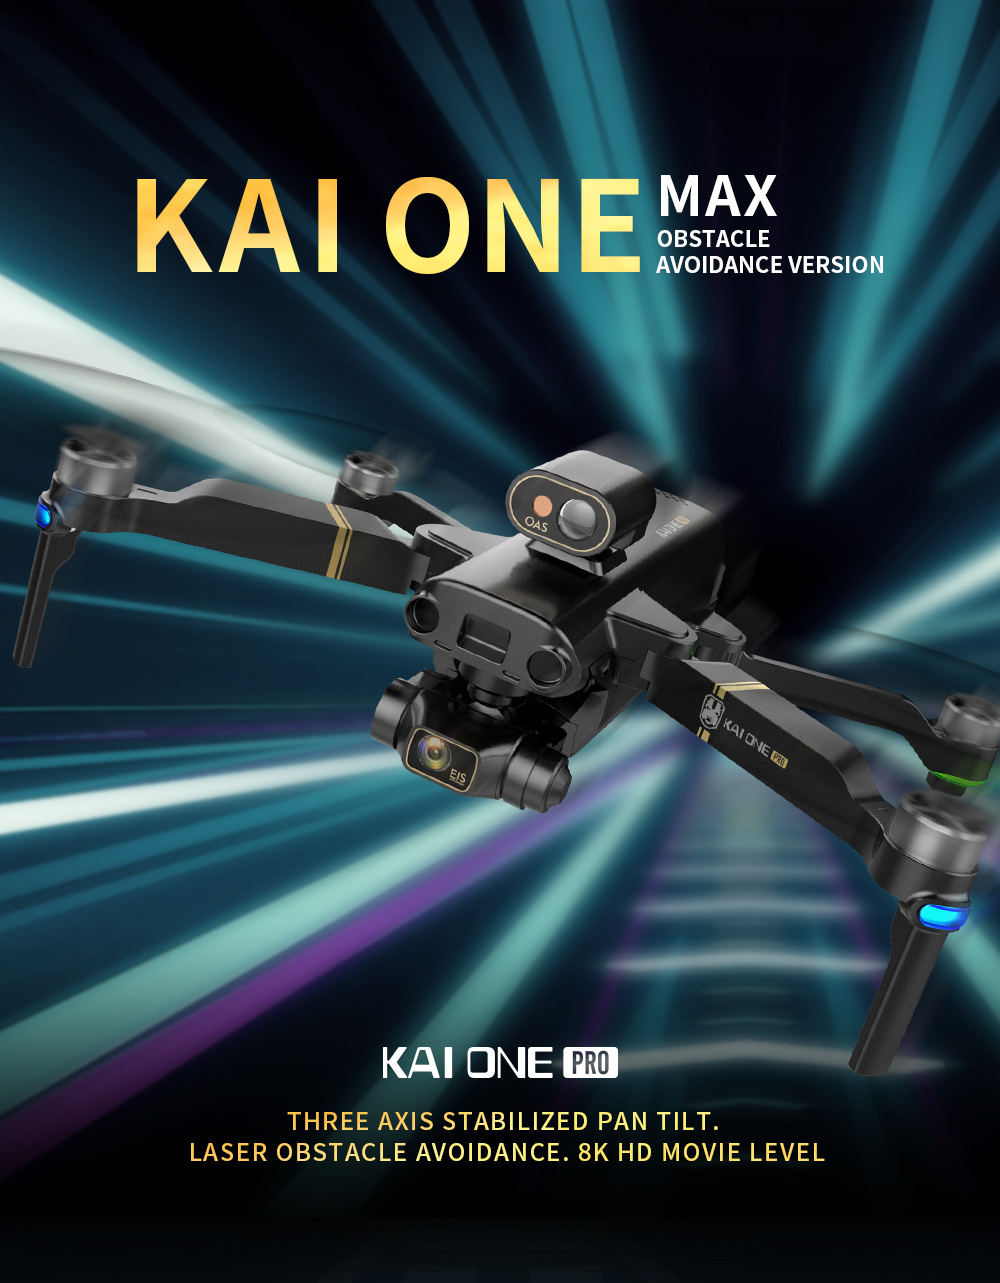 H95f1c0bbe90b47f1afc5d81fbbebacc5v - KAI ONE MAX GPS Obstacle Avoidance Drone Professional 4K/8K HD Dual Camera 3 Axis Gimbal Brushless RC Foldable Quadcopter Gifts